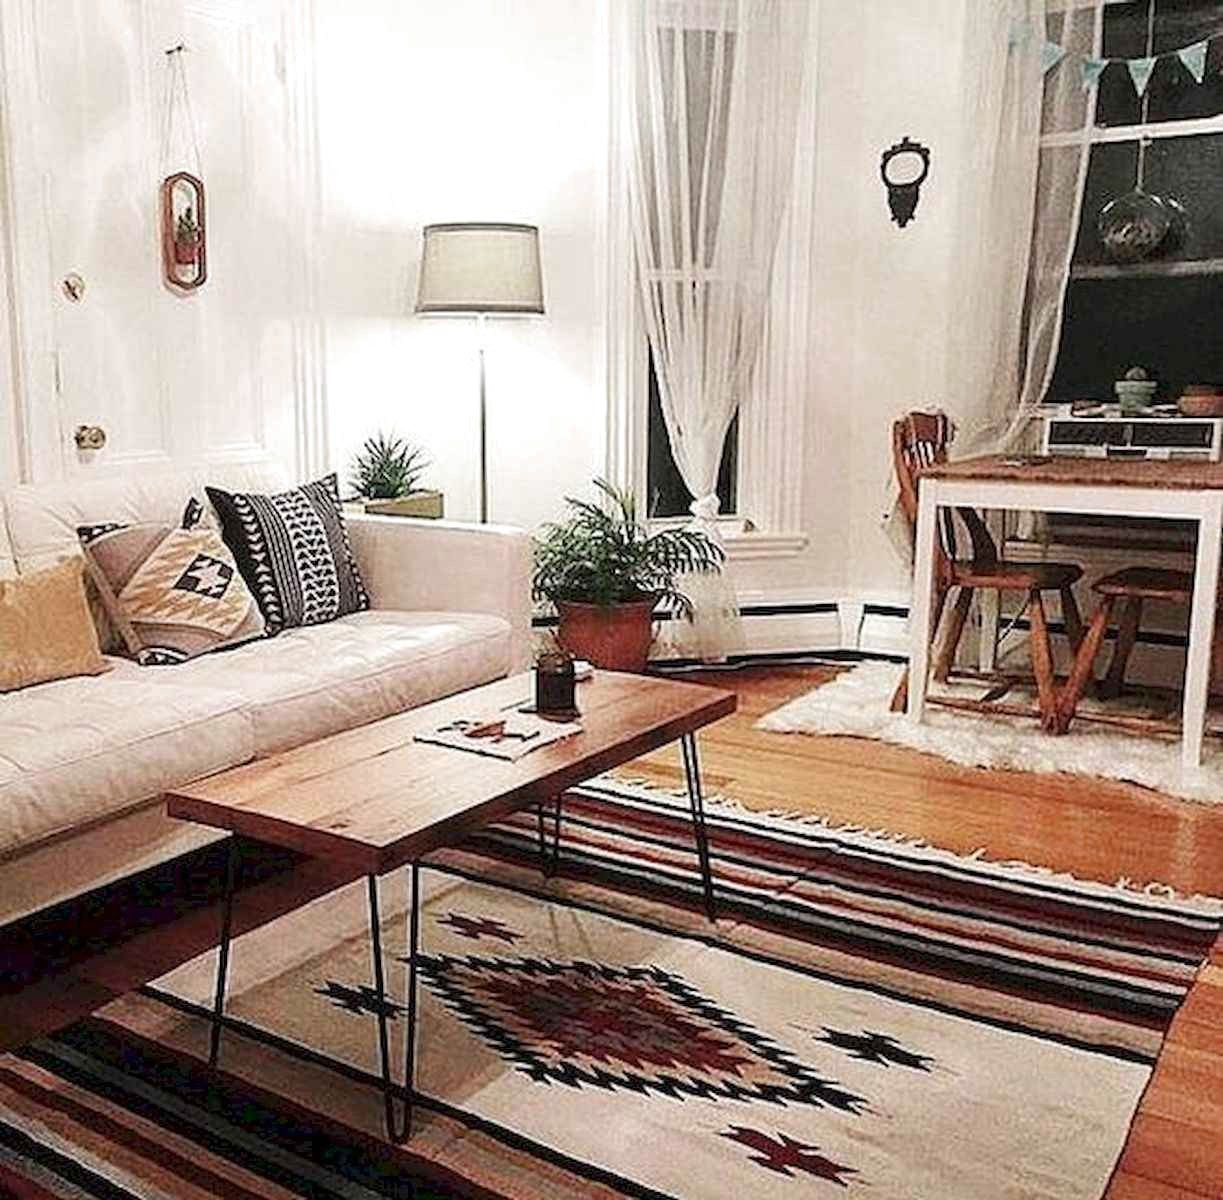 Photo of 62 Favourite Diy Projects Furniture Living Room Table Design Ideas #LivingRoomTable #FurnitureTable